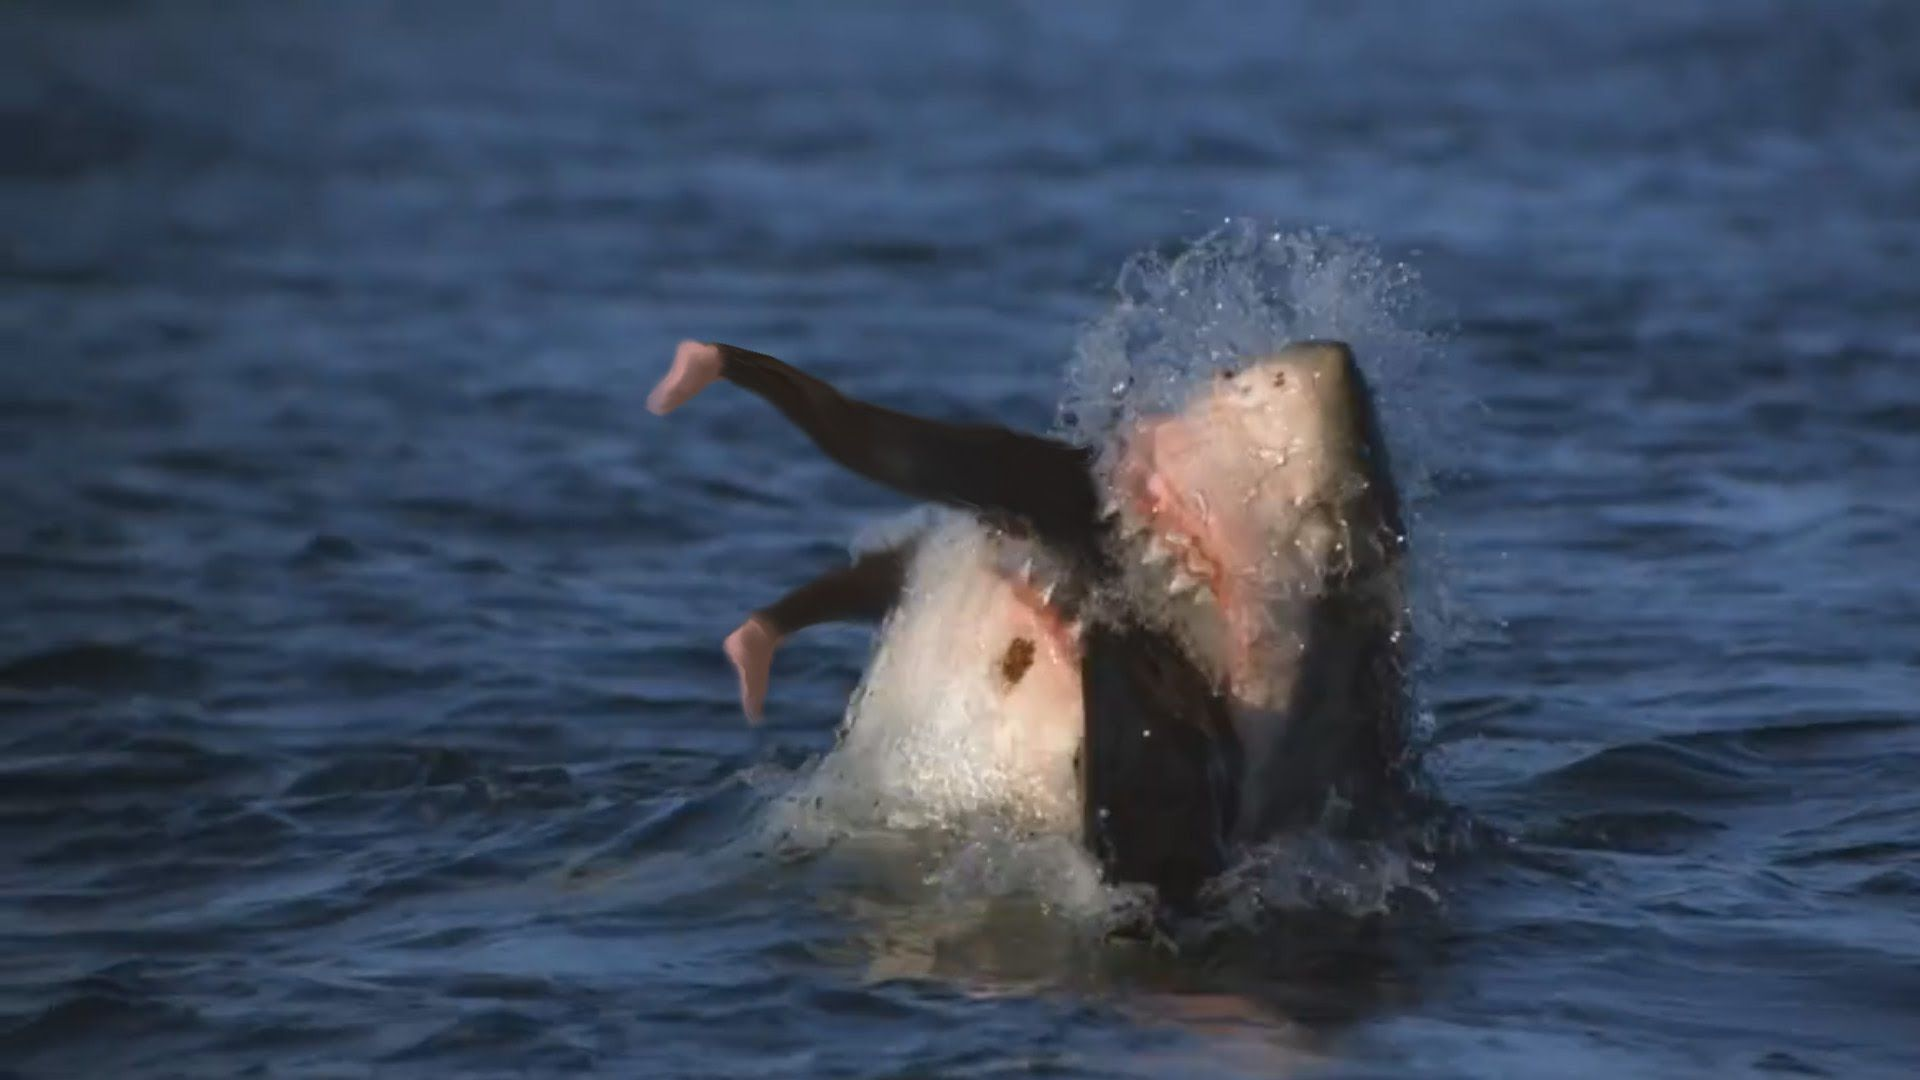 10 Most Dangerous Beaches For Deadly Shark Attacks With Images